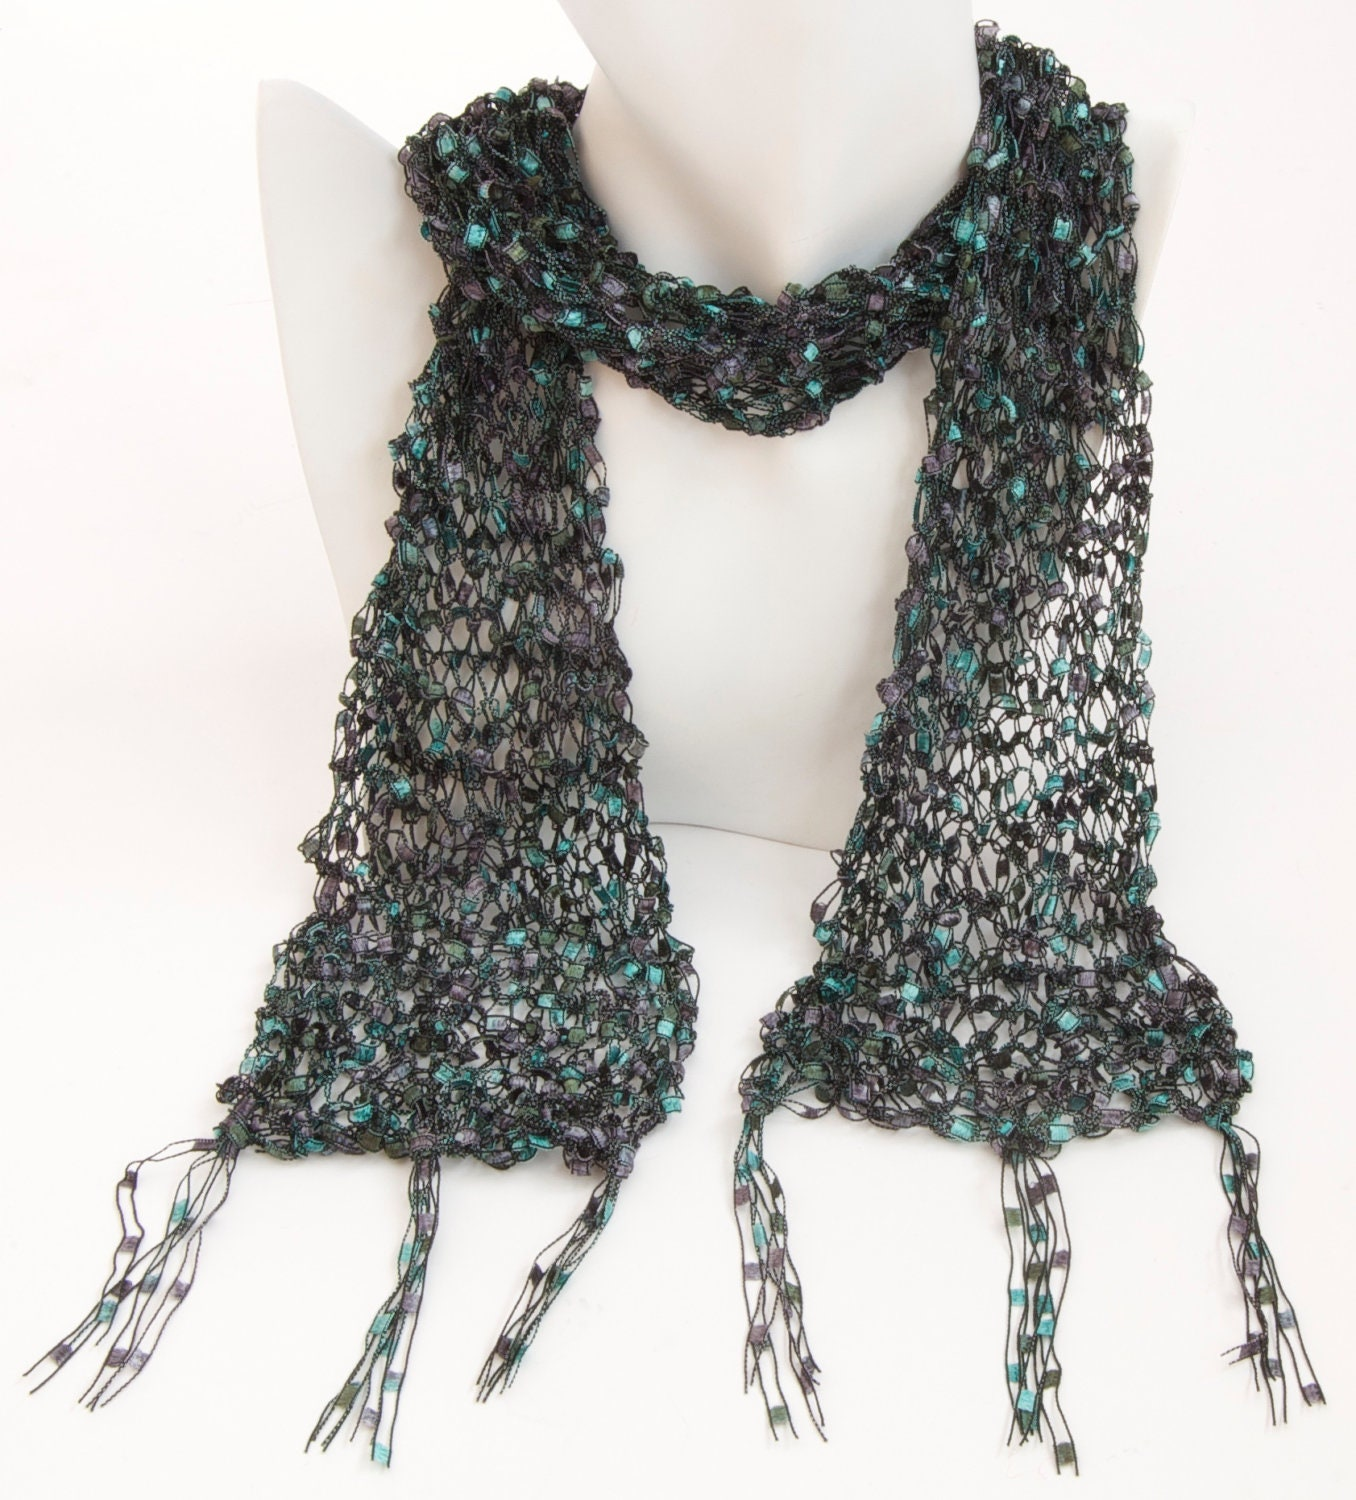 Green Ladder Yarn Scarf Black Trellis Lace By Emmadickiedesign